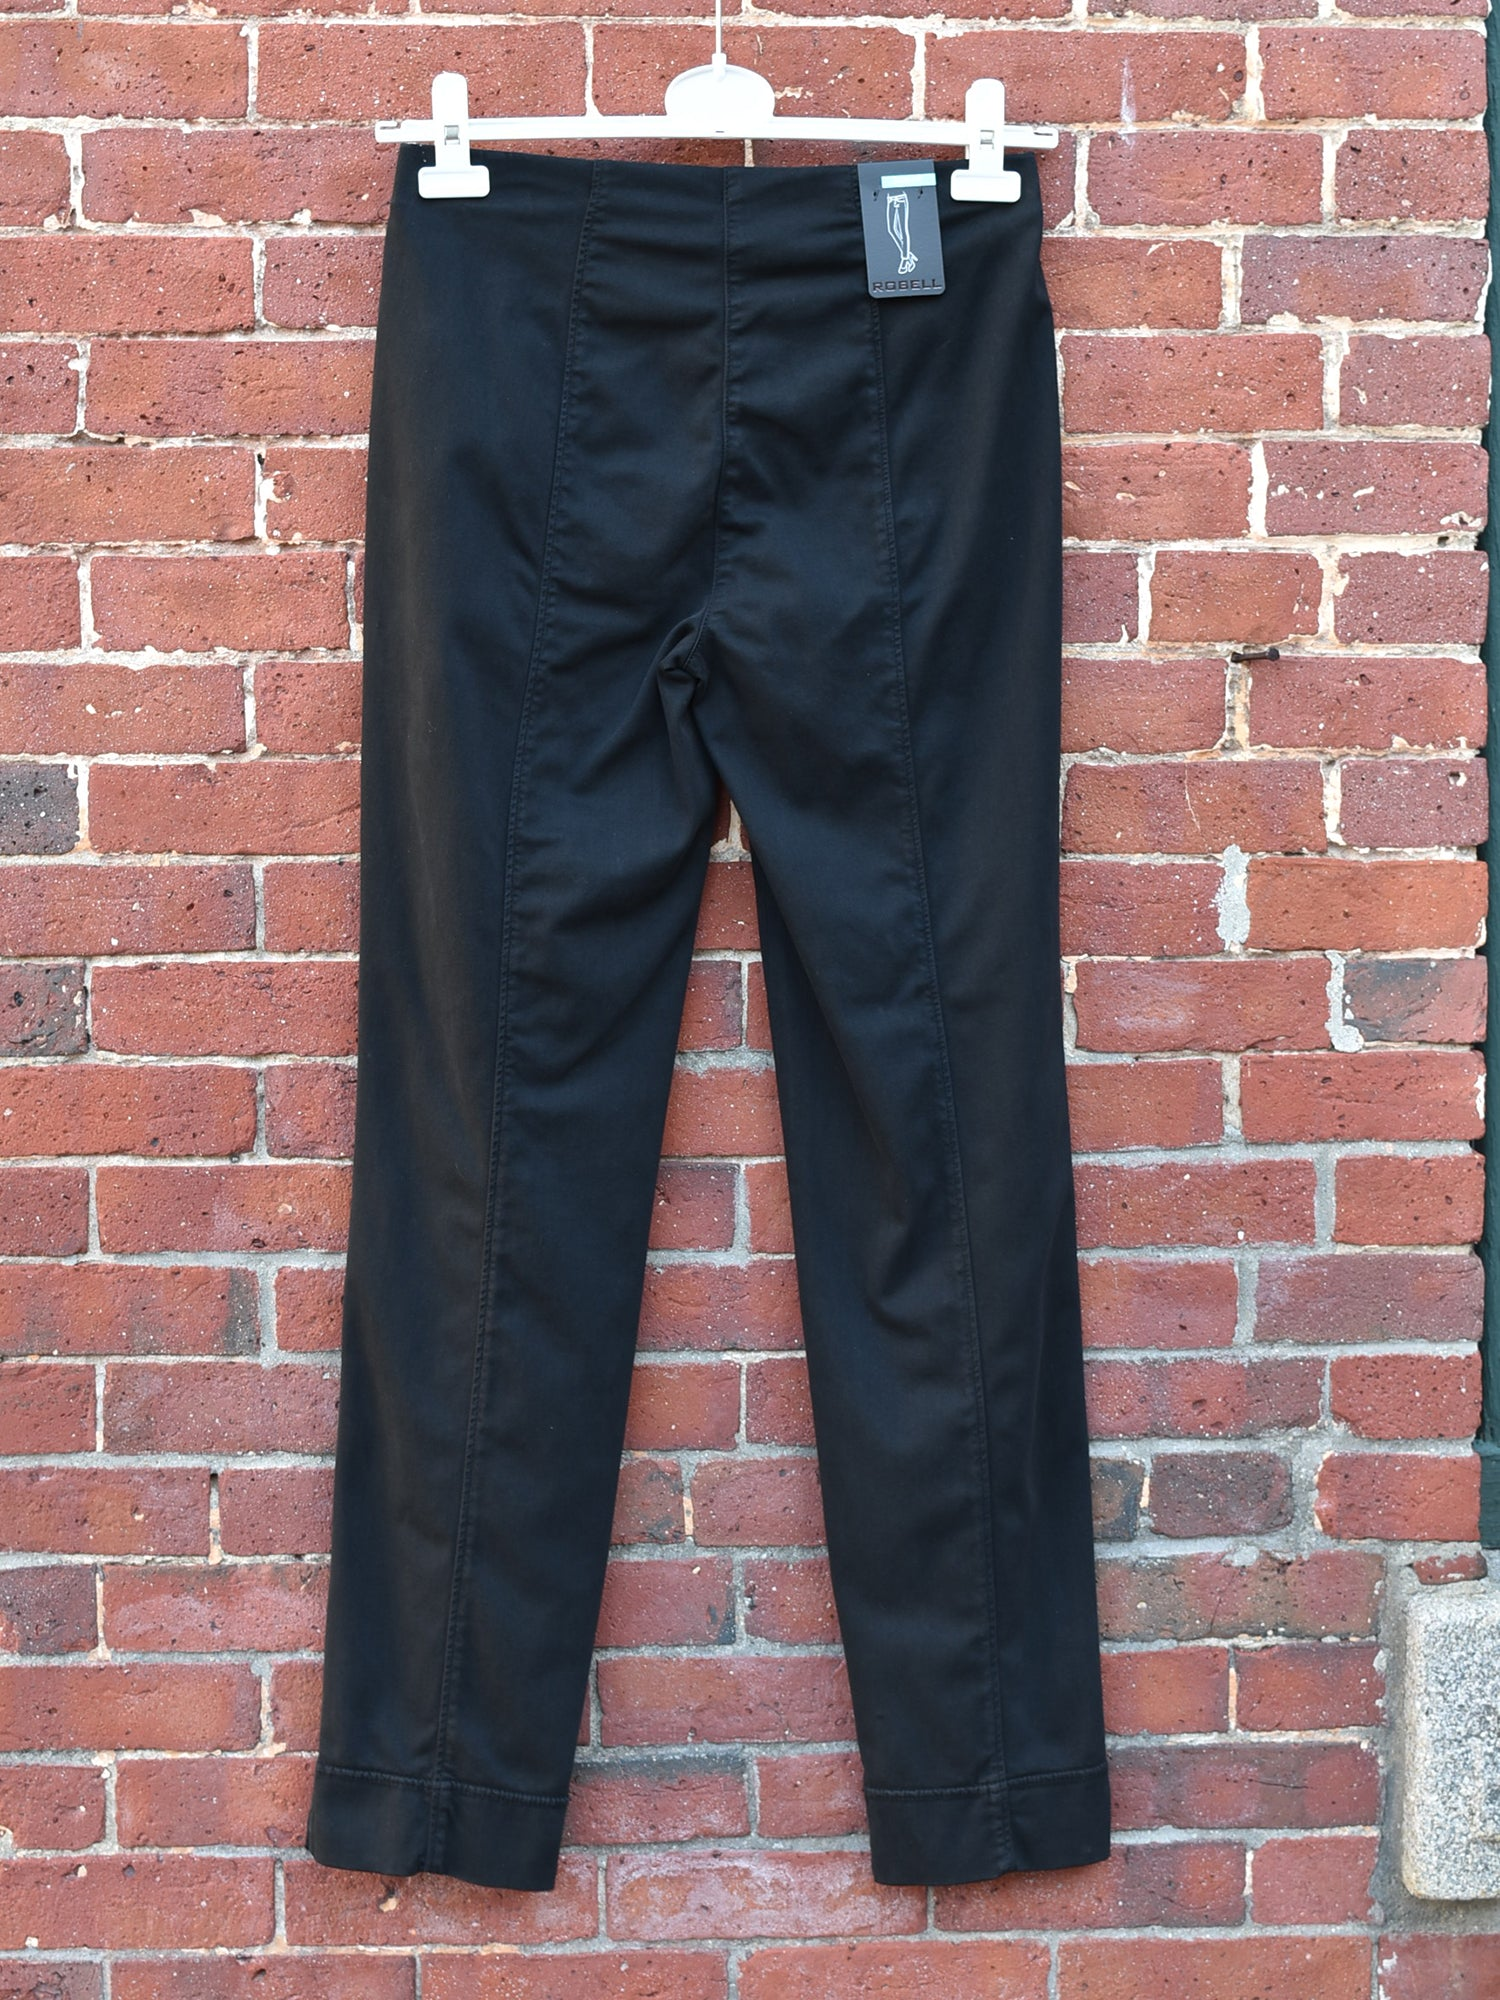 Robell Marie Garment Dyed Pant - Black - Statement Boutique